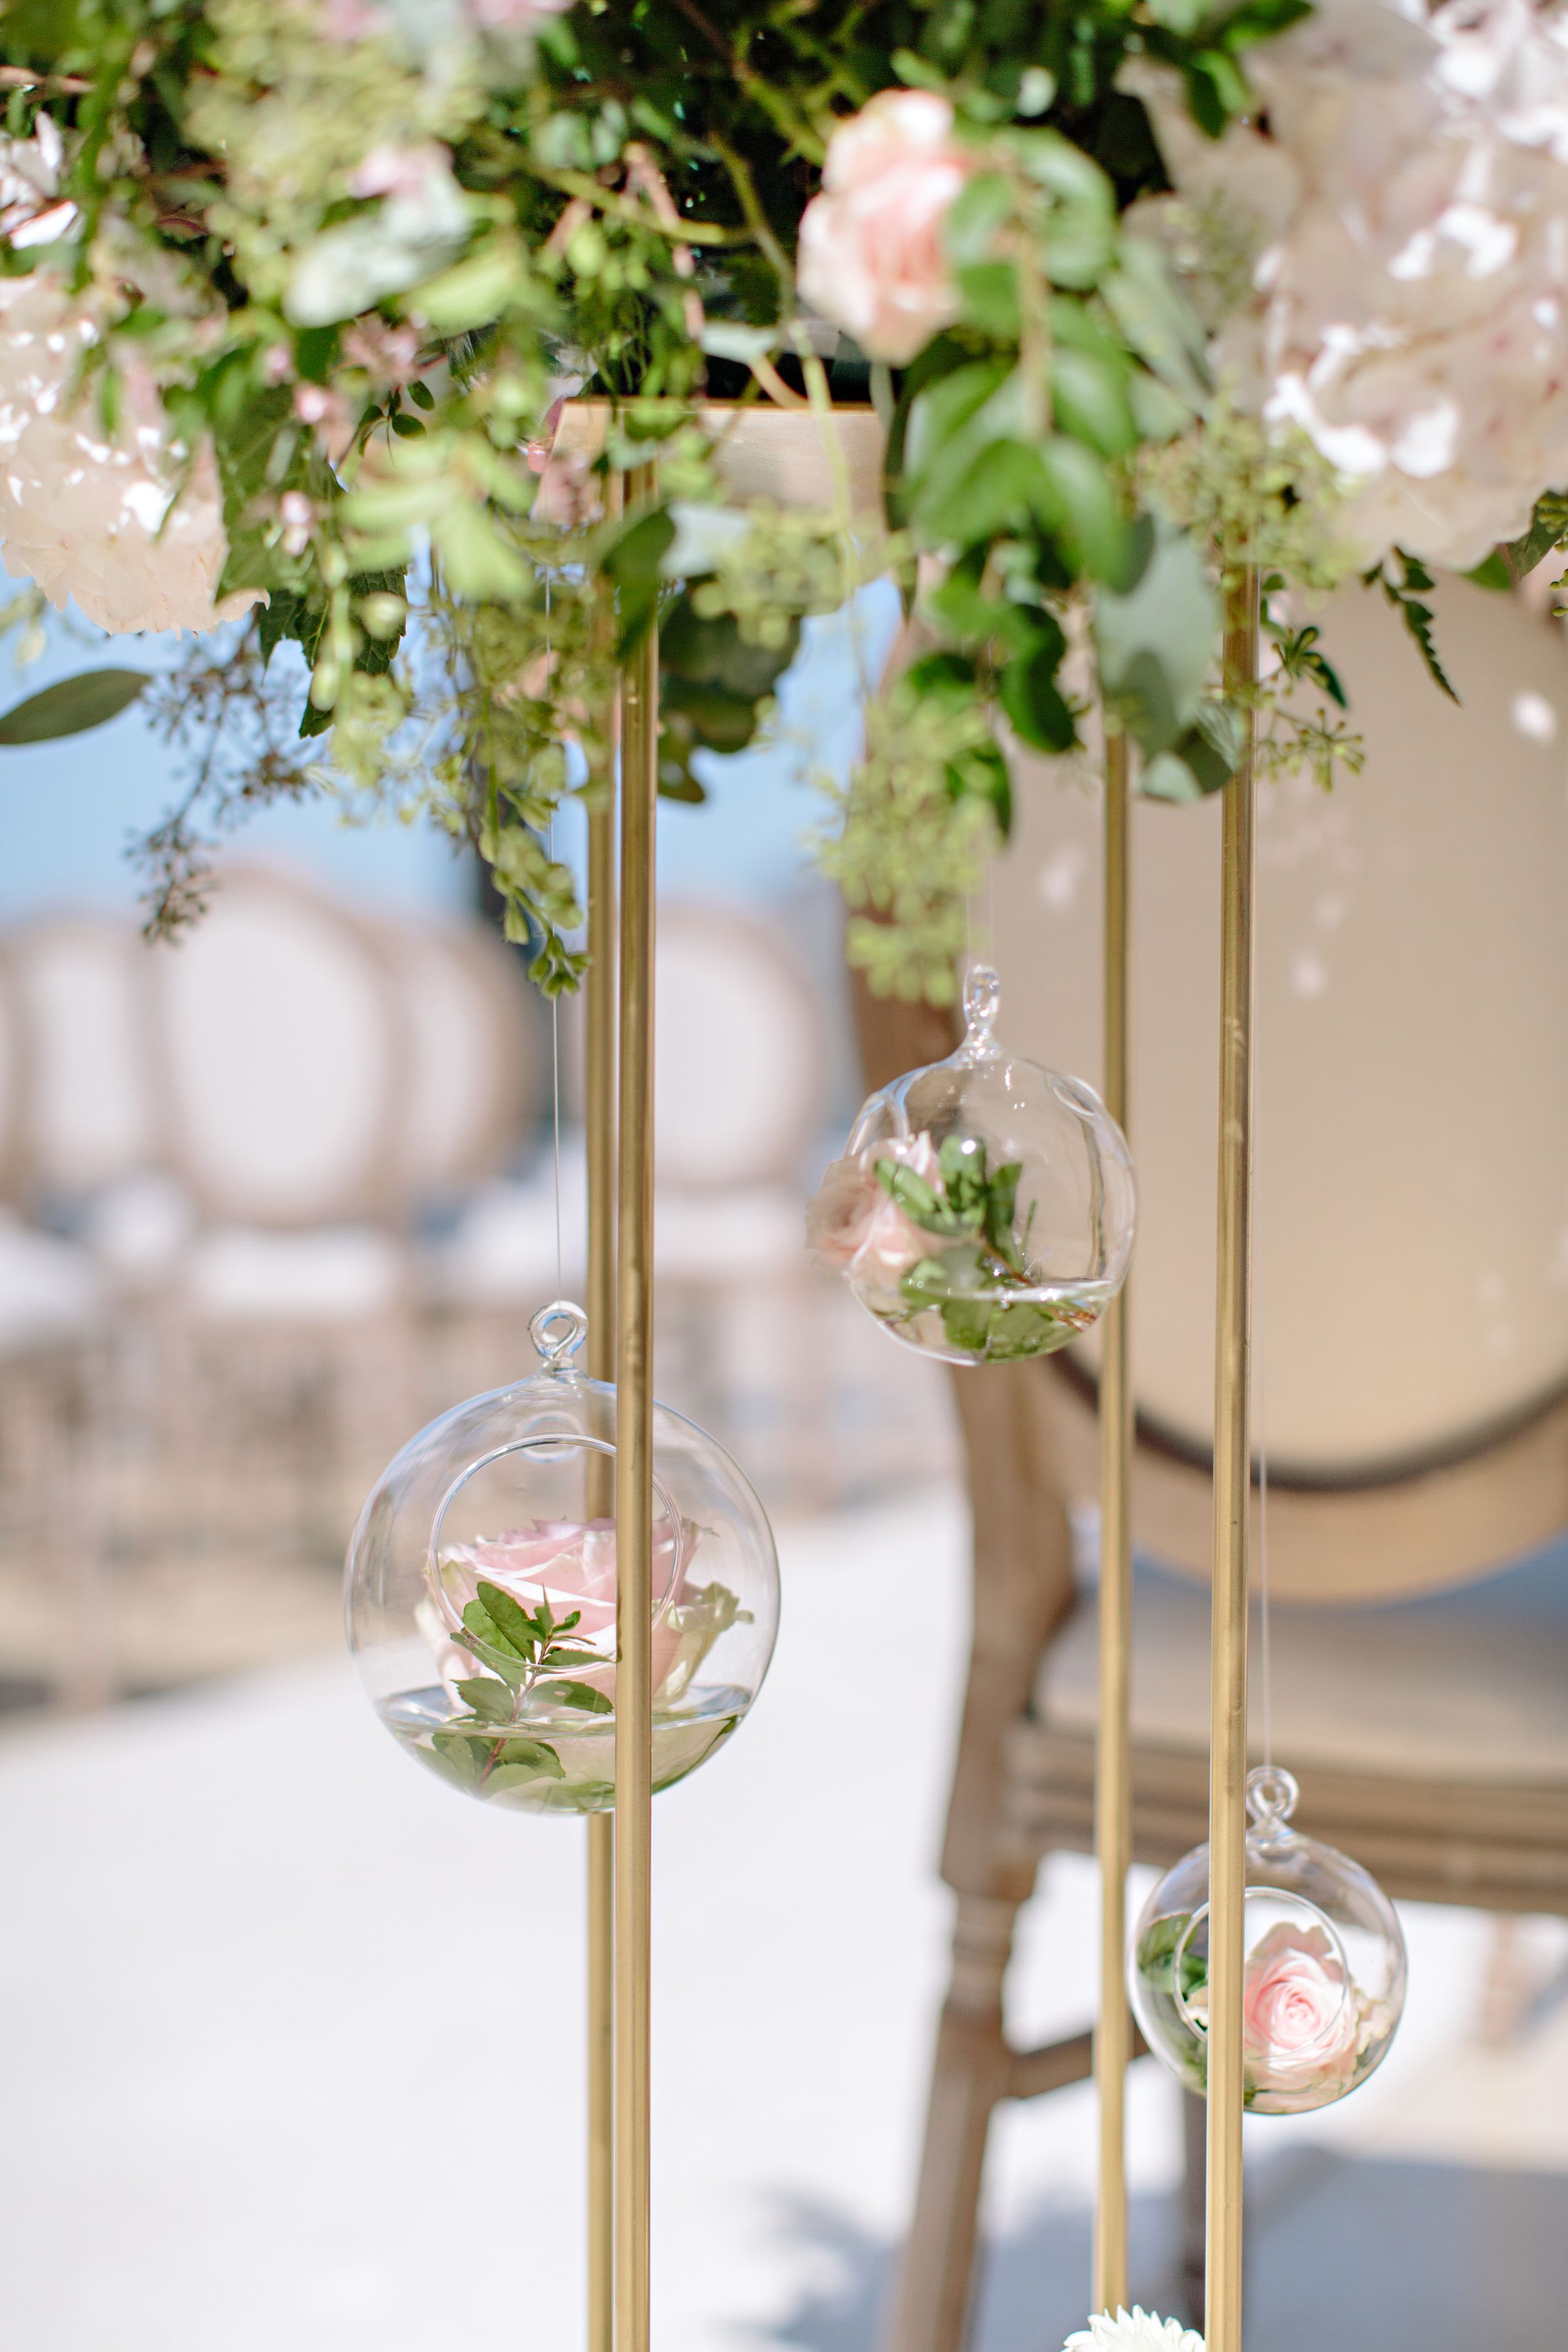 hanging glass vase at wedding ceremony